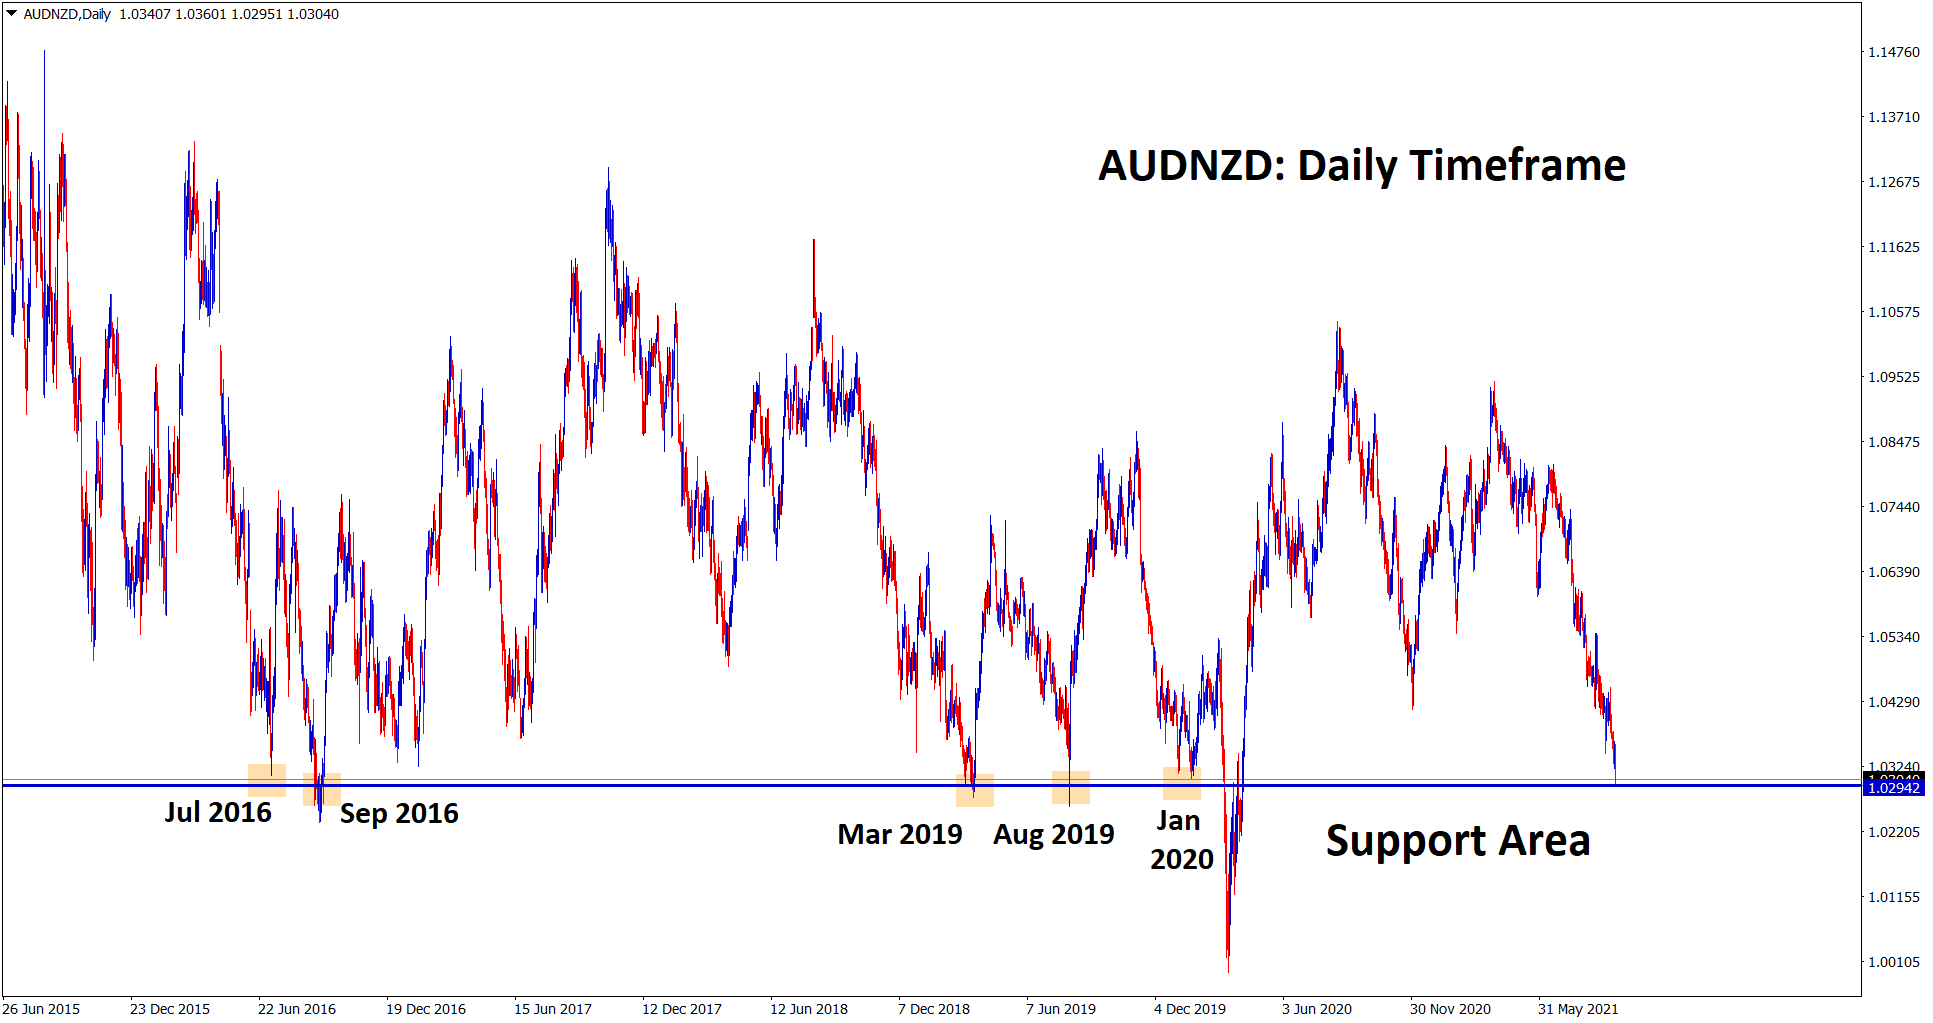 AUDNZD is standing at the strong support area in the daily timeframe